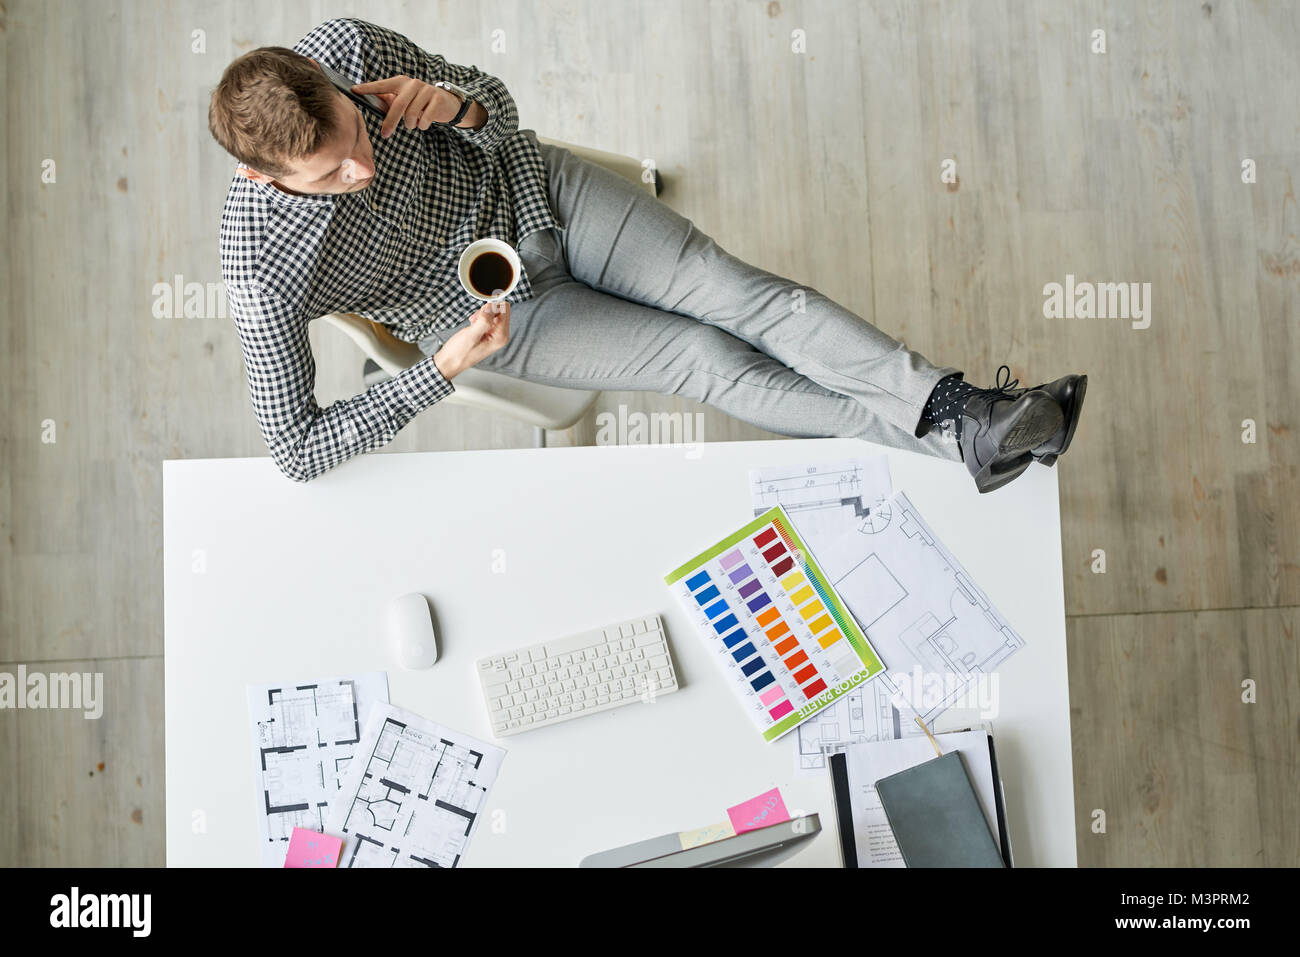 Designer Relaxing at Workplace - Stock Image